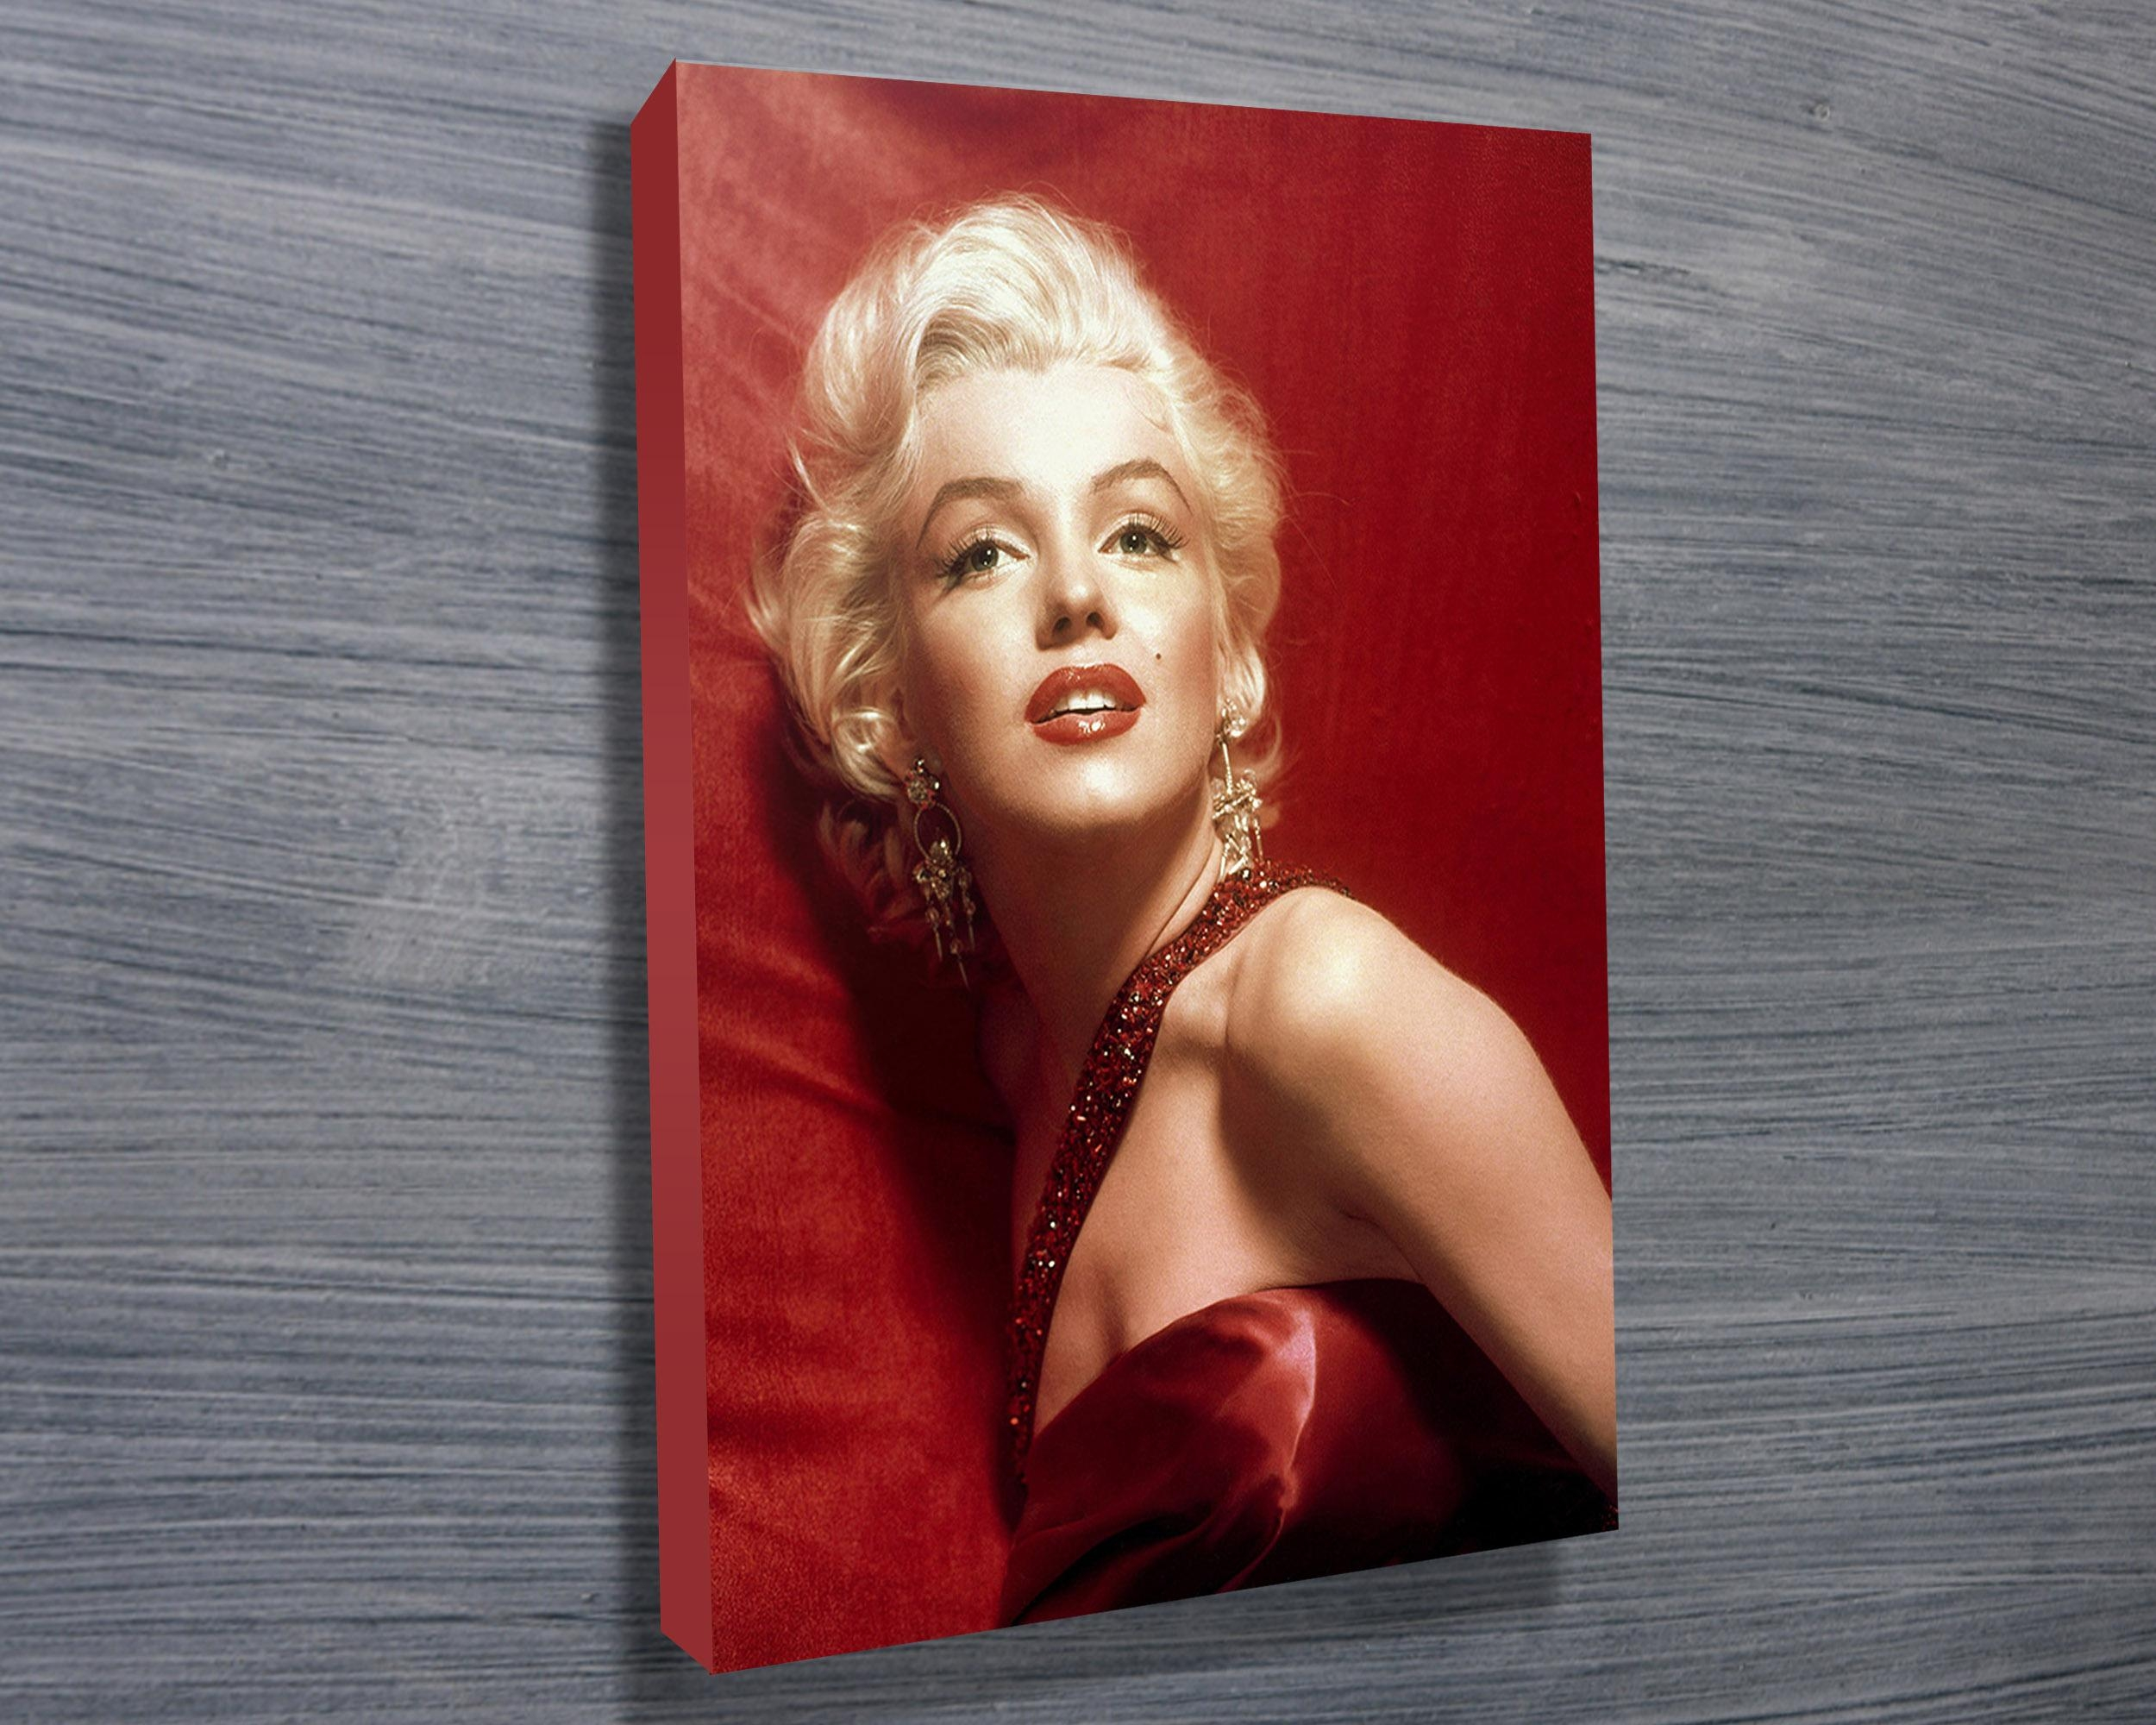 20 best ideas marilyn monroe framed wall art wall art ideas. Black Bedroom Furniture Sets. Home Design Ideas